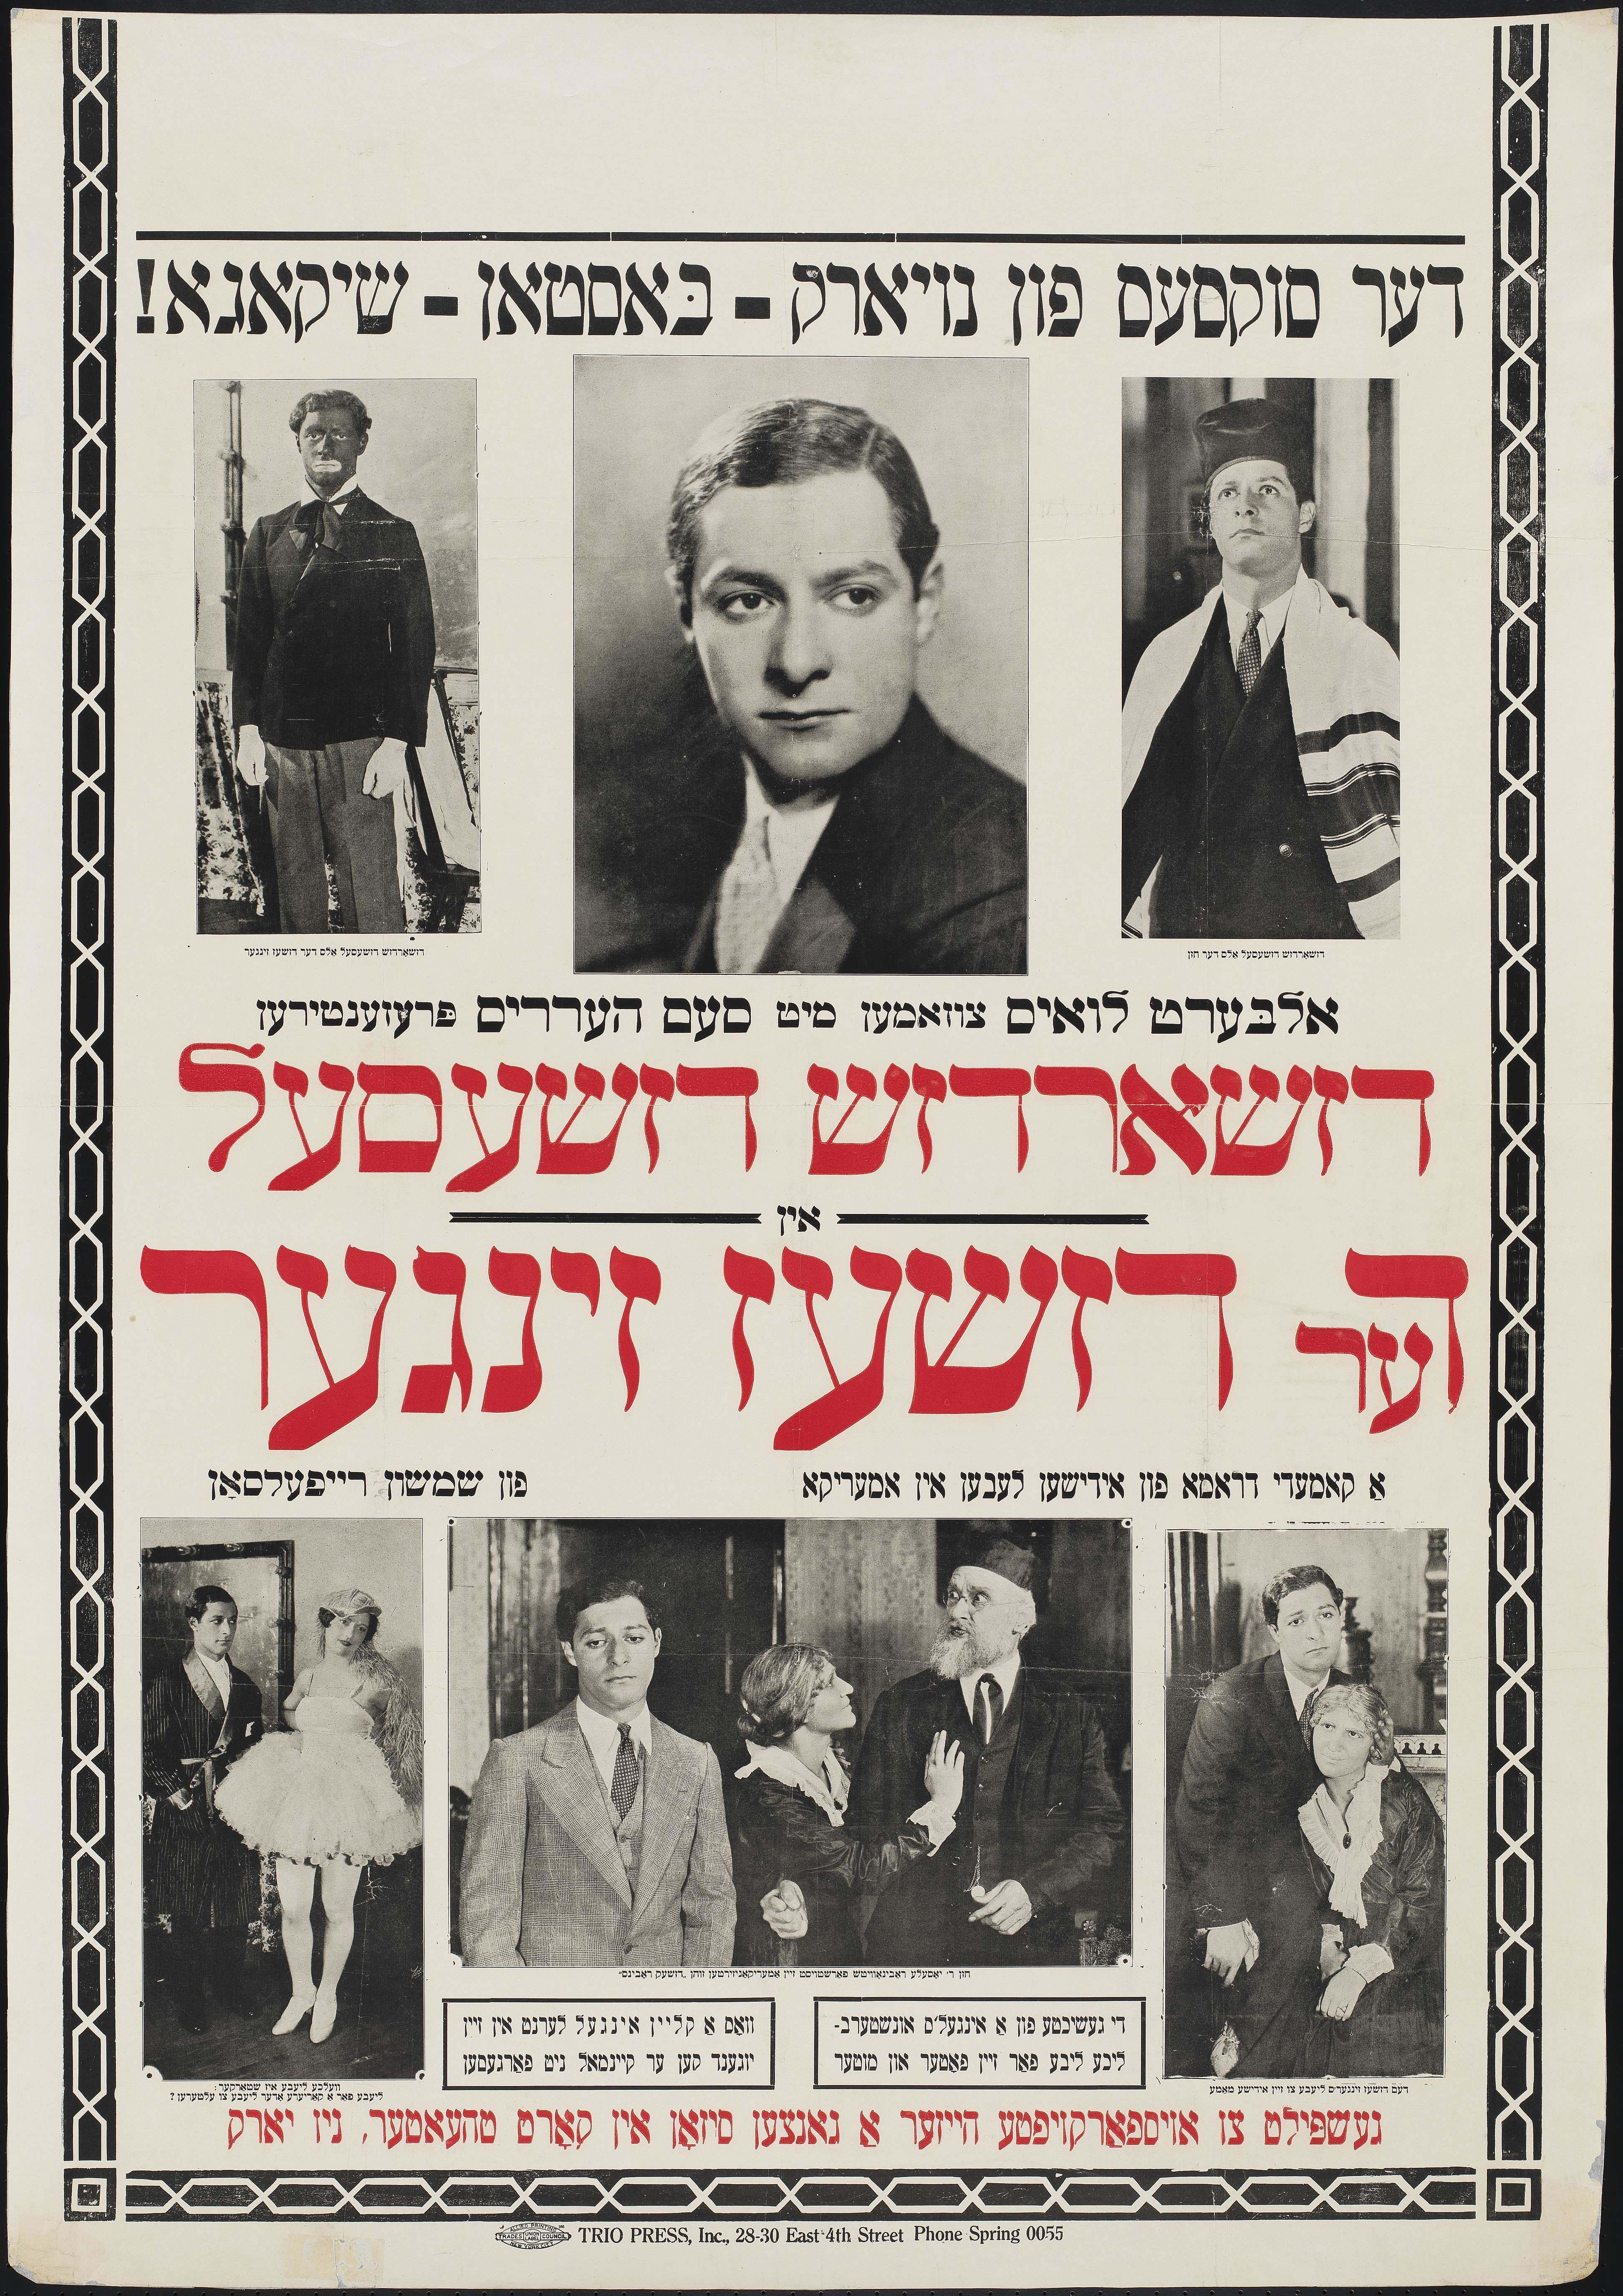 <p><i>The Jazz Singer </i>at the Cort Theatre poster, c. 1925. Museum of the City of New York, Gift of the Hebrew Actors Union,&nbsp;66.33.5</p>